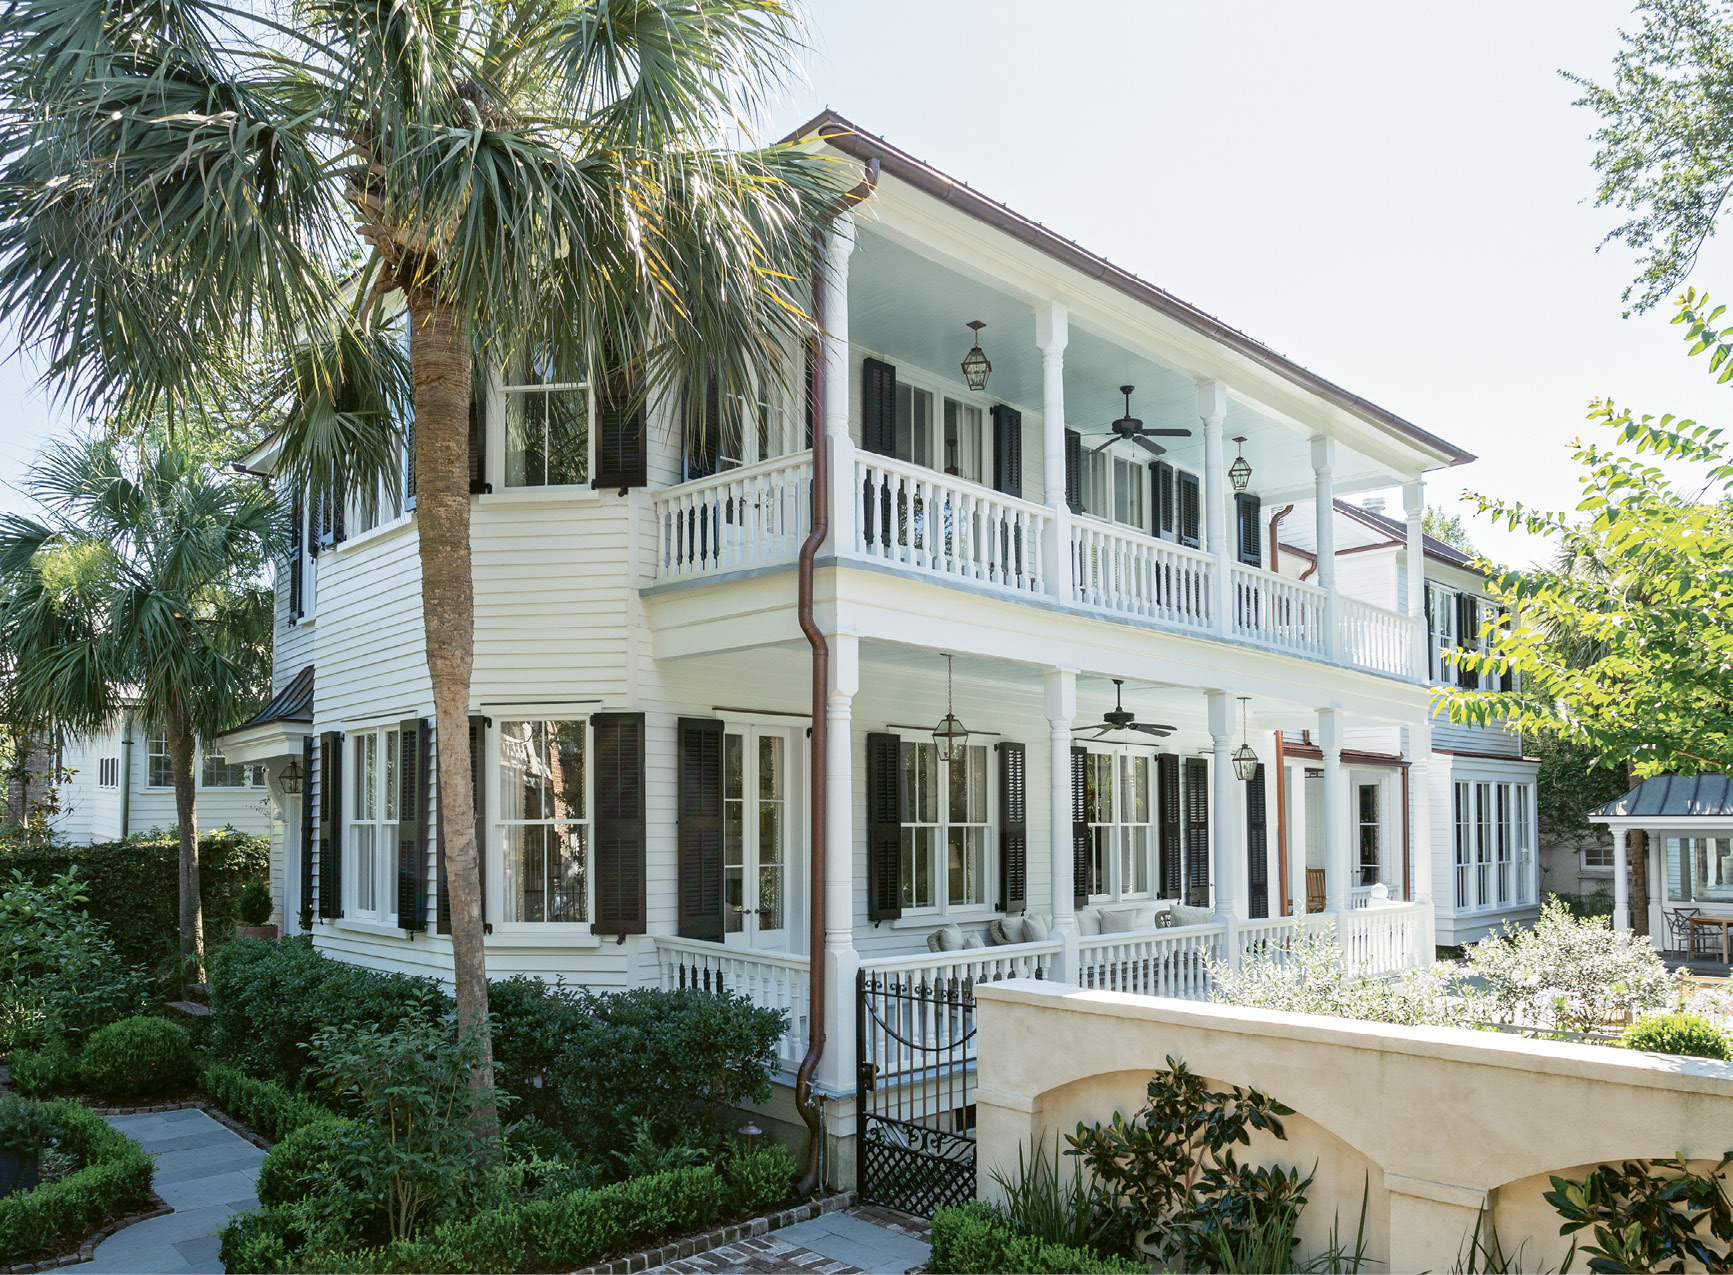 HOME AWAY FROM HOME: Picturesque piazzas and palm trees formed the Charleston vacation home ideals of a couple from Omaha looking for a winter retreat. Following an extensive renovation by Beau Clowney Architects and Tupper Builders, the century-old, late-Victorian charmer was ready for its new family.